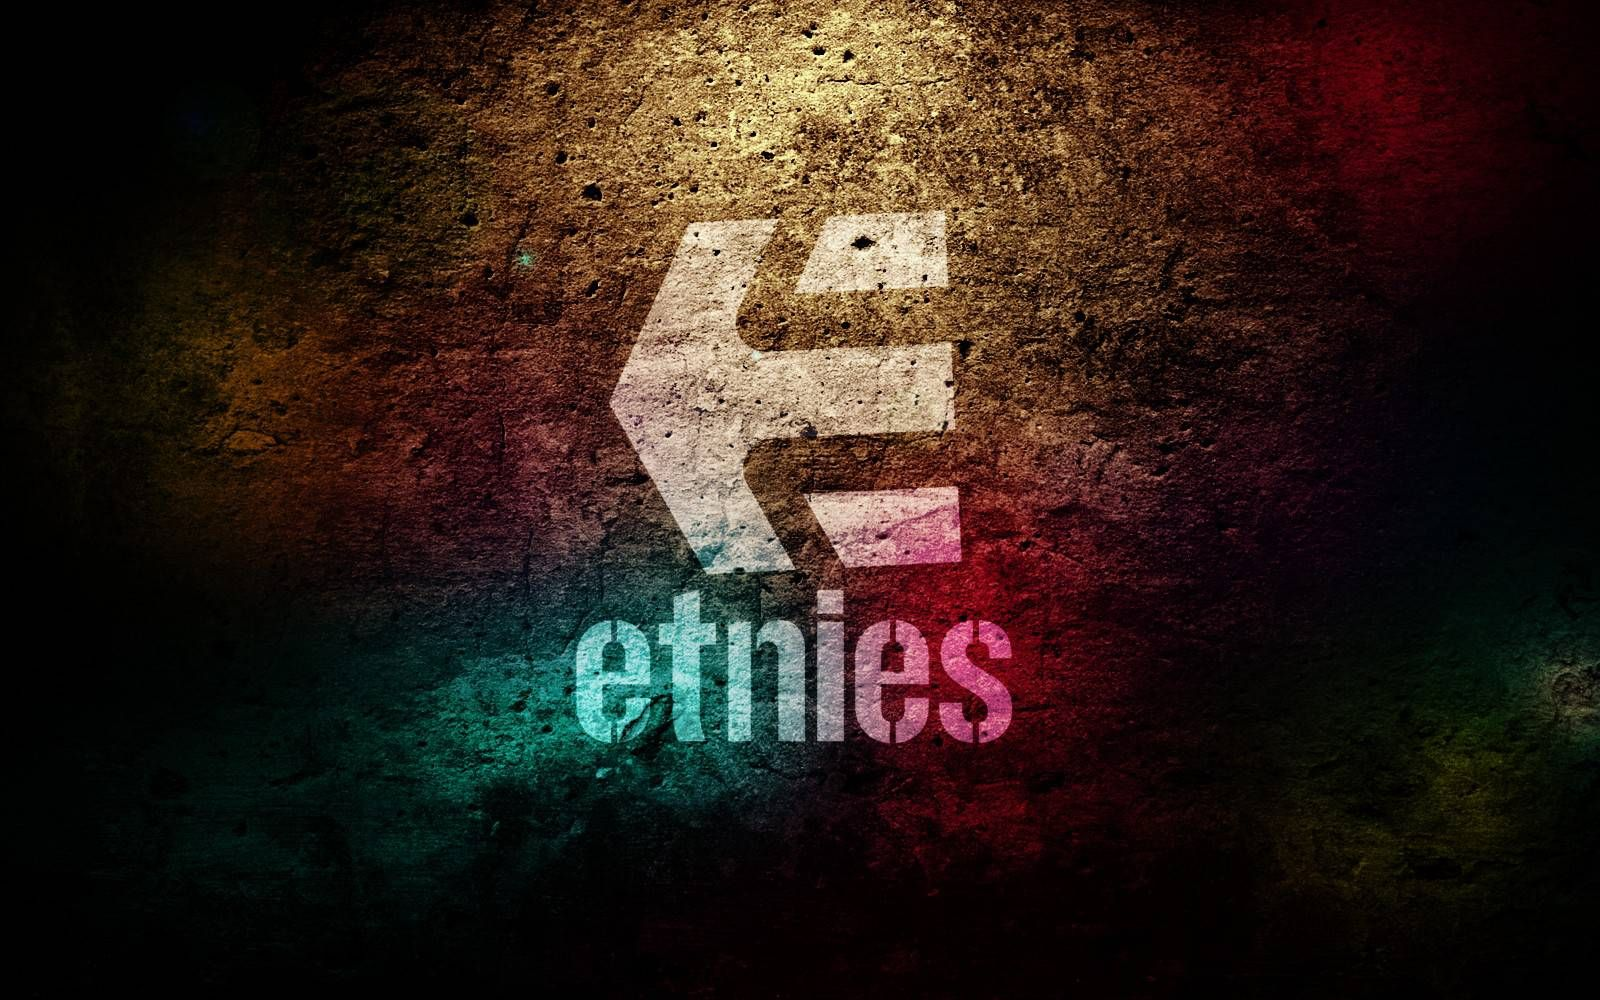 Etnies Skateboards Logo 1600×1000 for Desktop Wallpapers